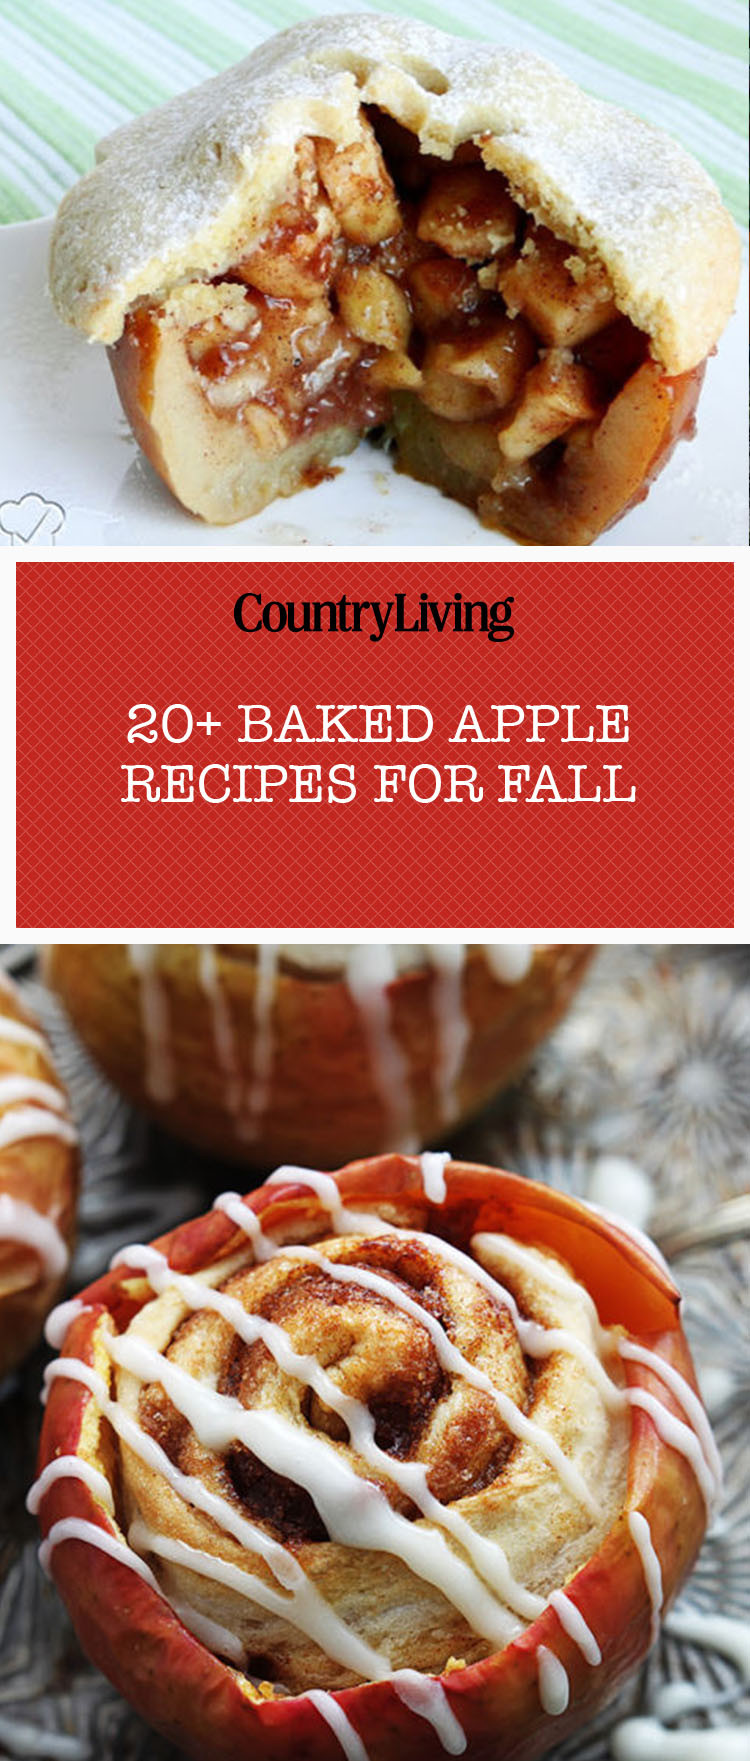 Fall Apple Recipes  23 Fall Baked Apple Recipes Easy Ideas for Stuffed Apples